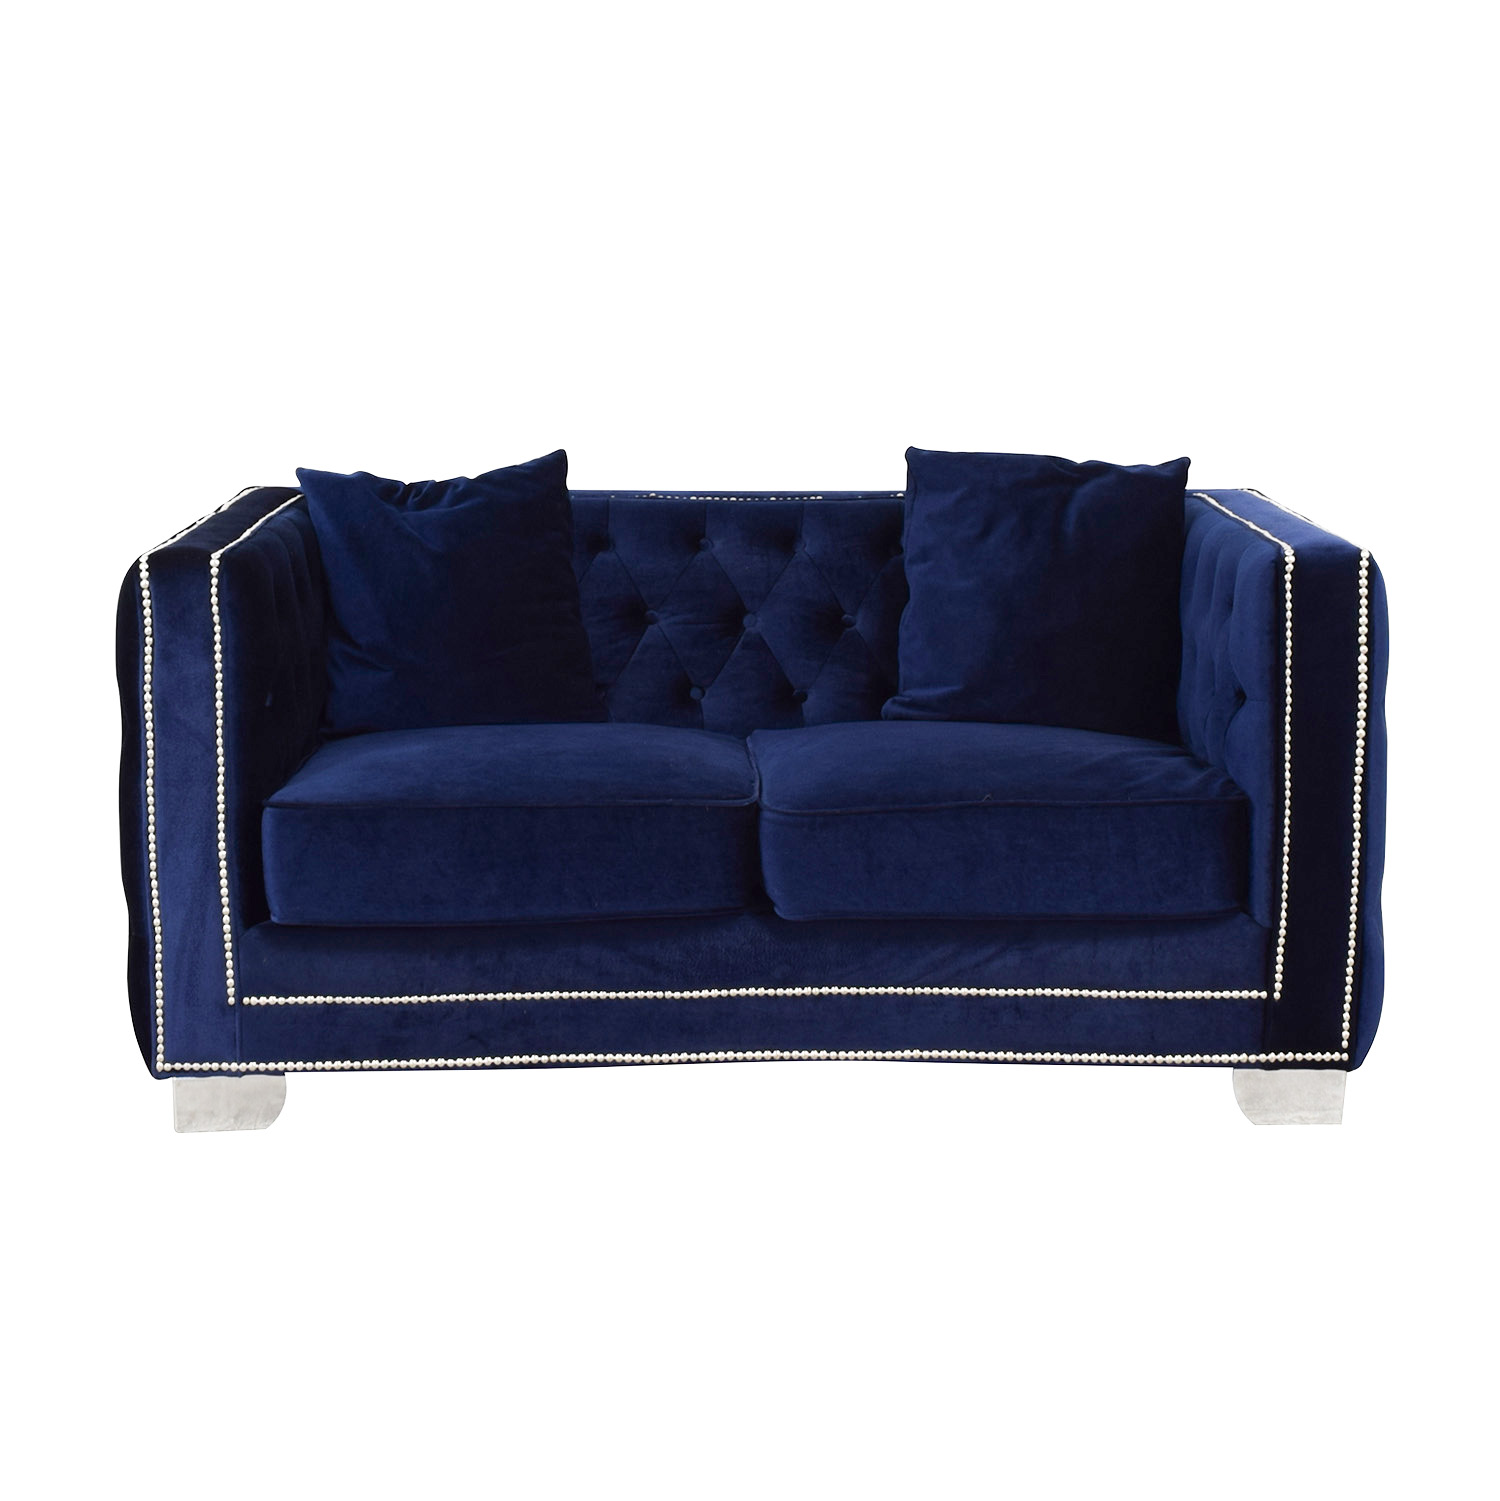 Ashley Furniture Blue Tufted Nailhead Two-Cushion Loveseat / Loveseats